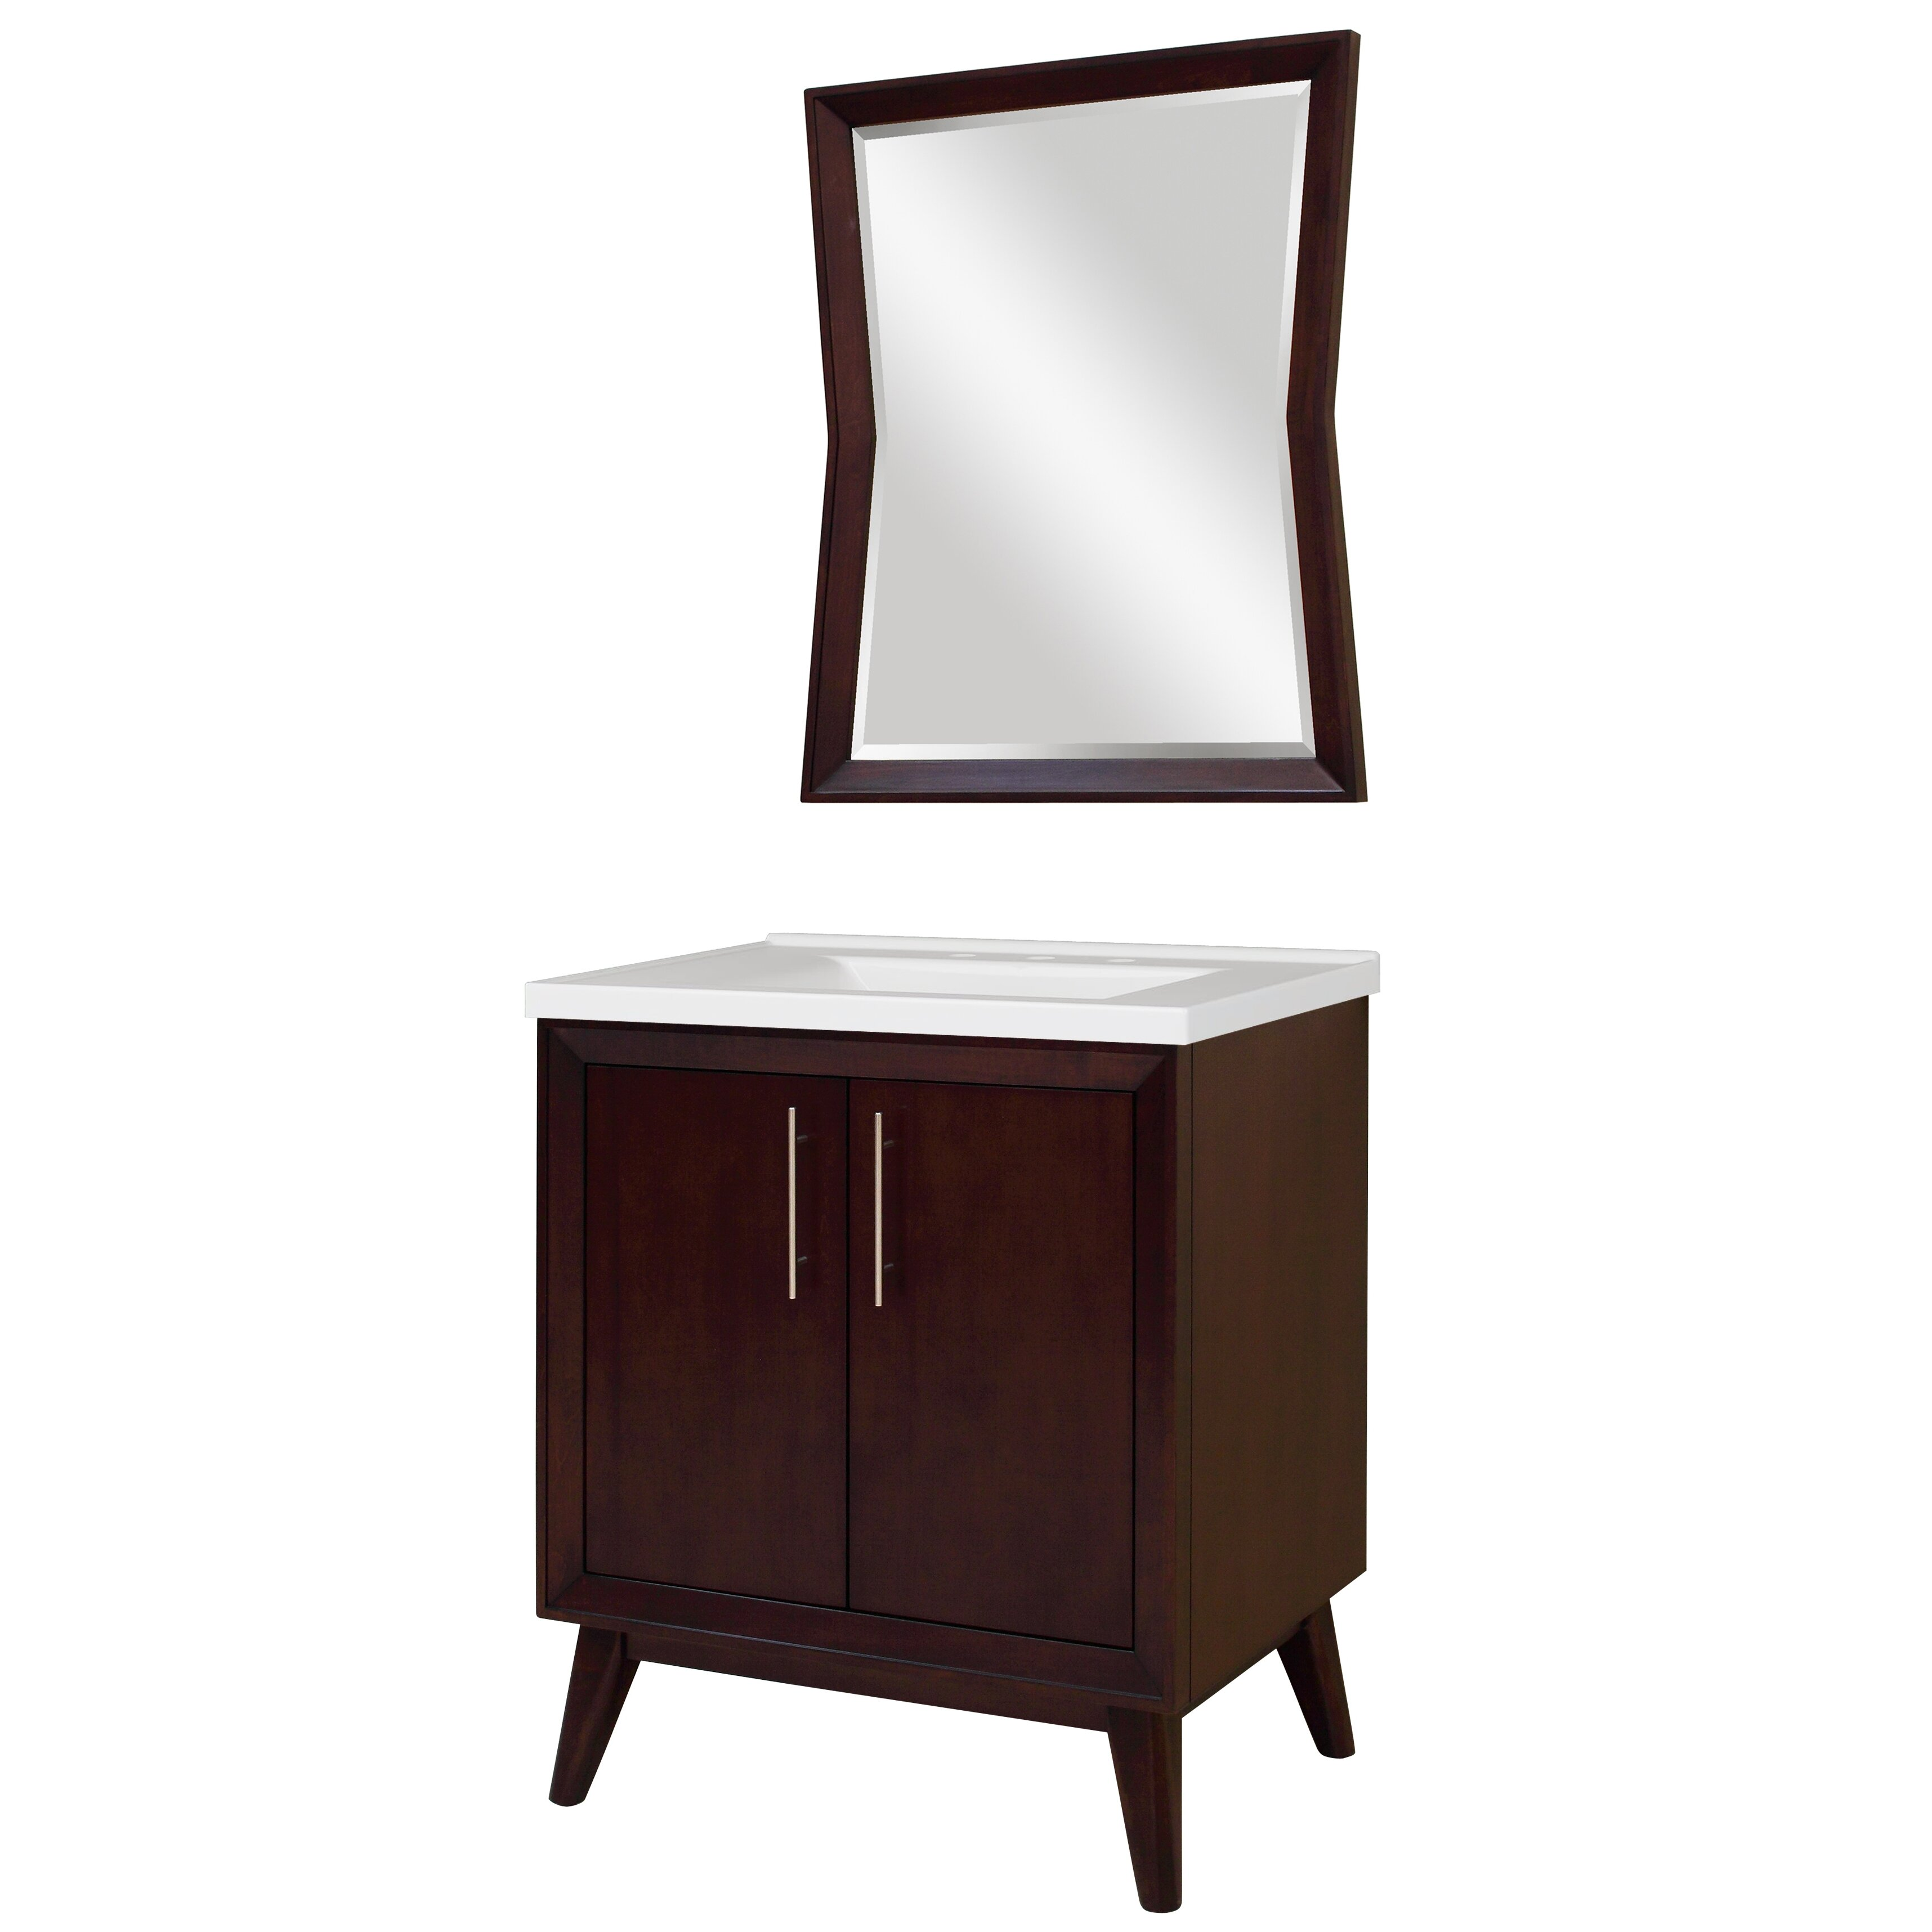 Sagehill Premier 31 Single Bathroom Vanity Top Reviews Wayfair